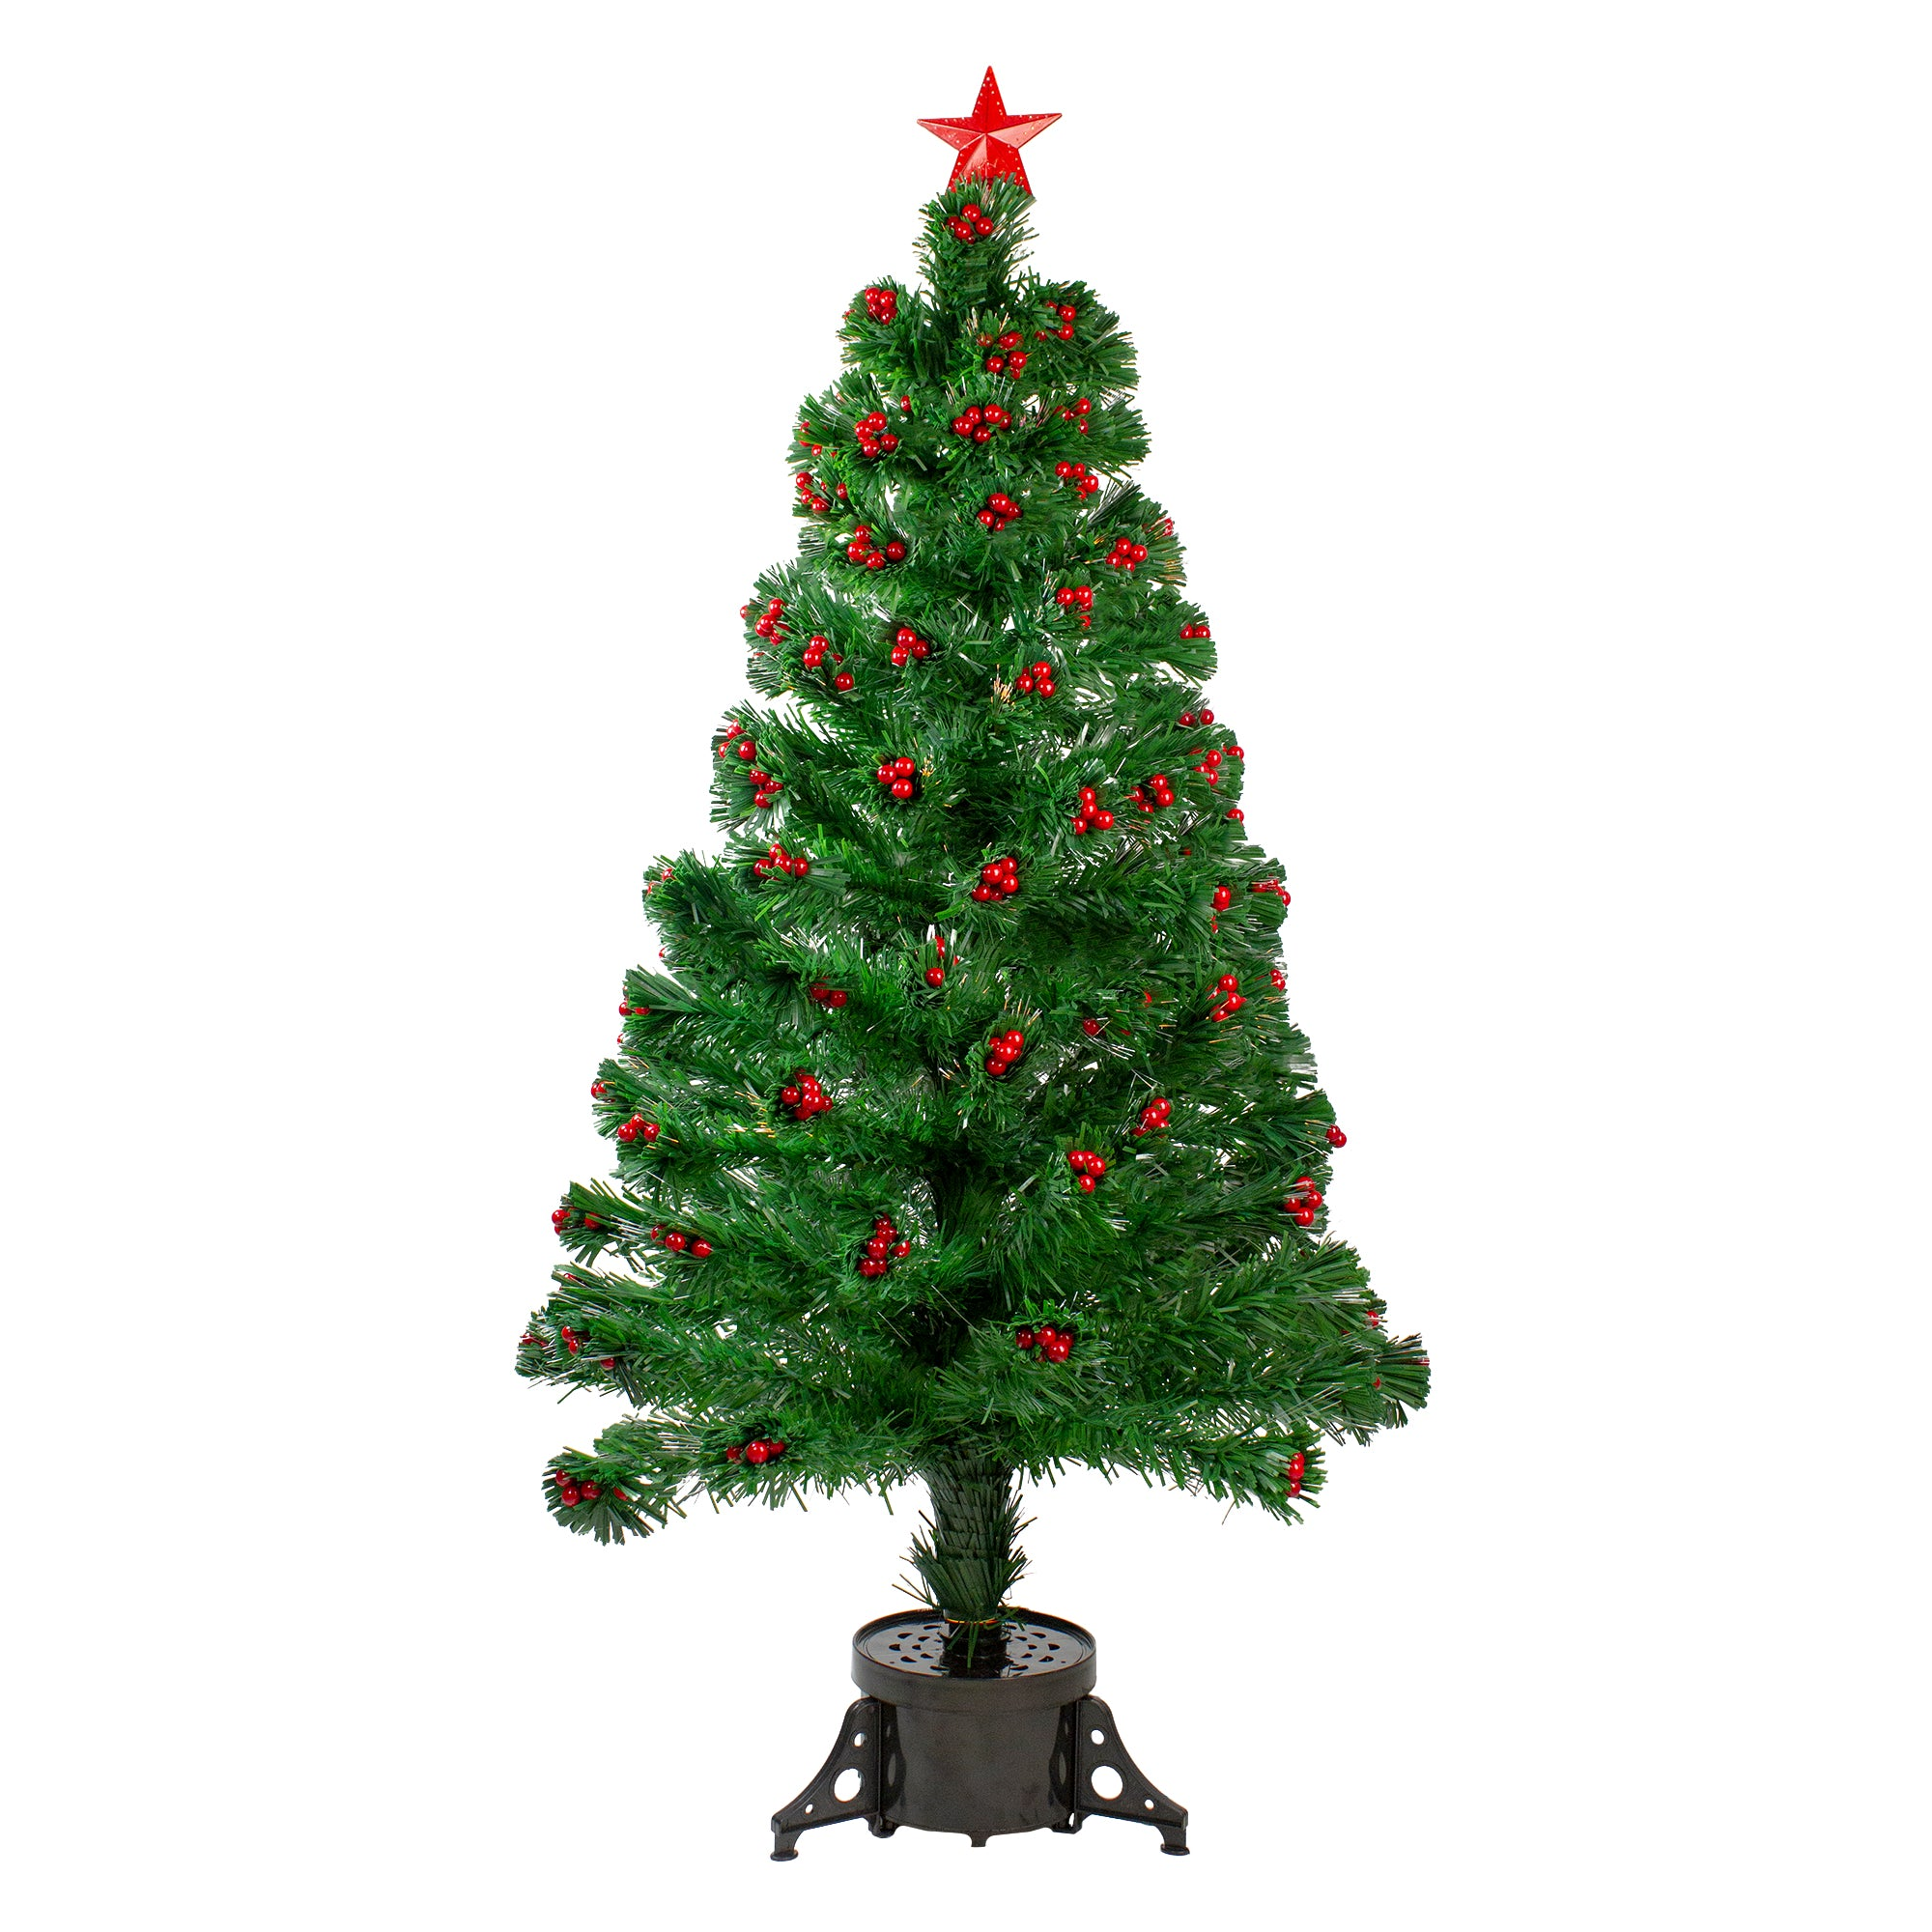 4' Pre-Lit Color Changing Artificial Christmas Tree with Red Berries